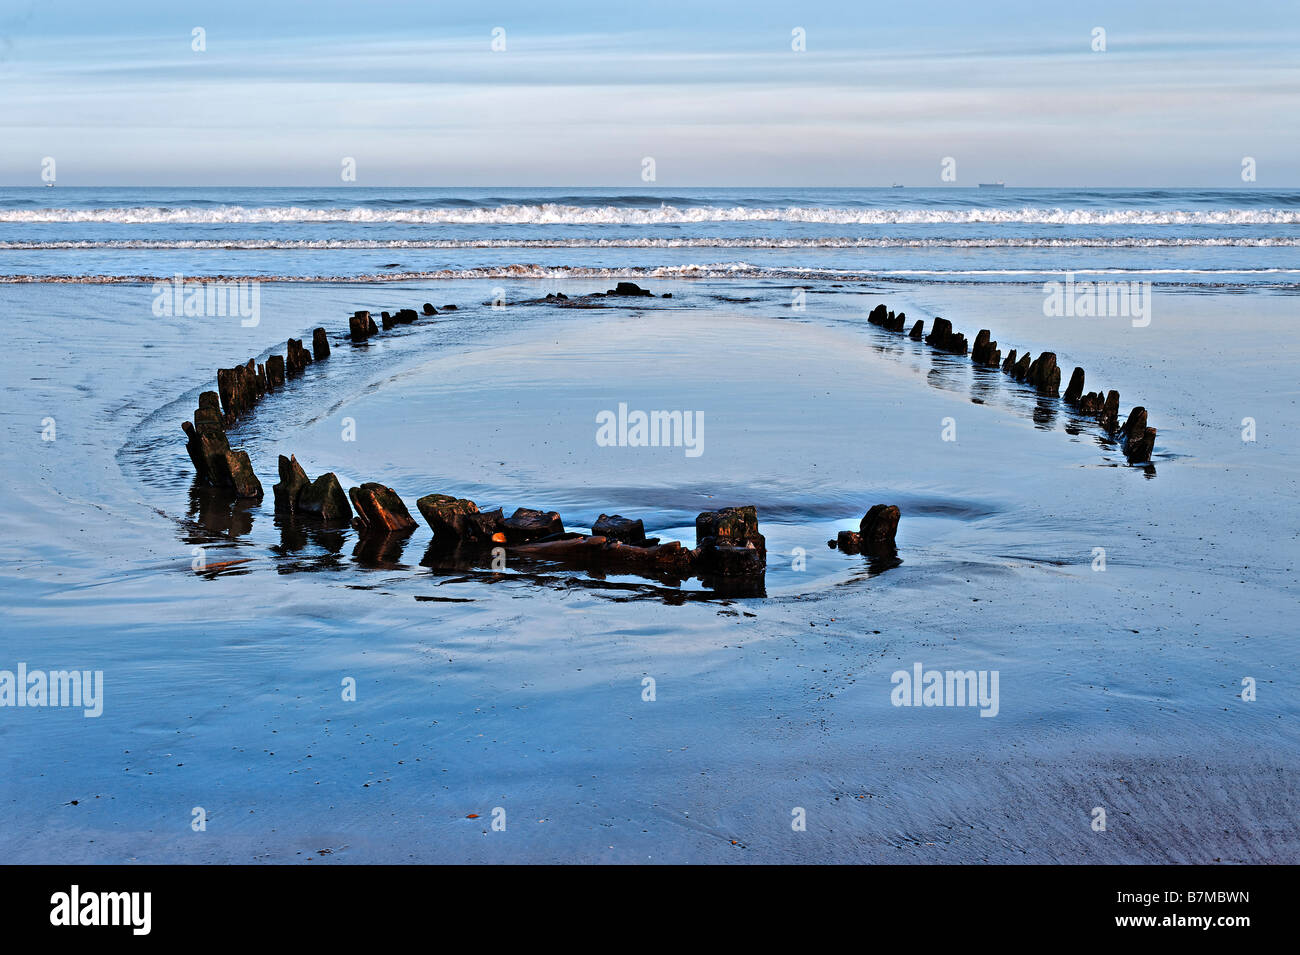 Timbers of shipwreck showing above the sand at low tide - Stock Image